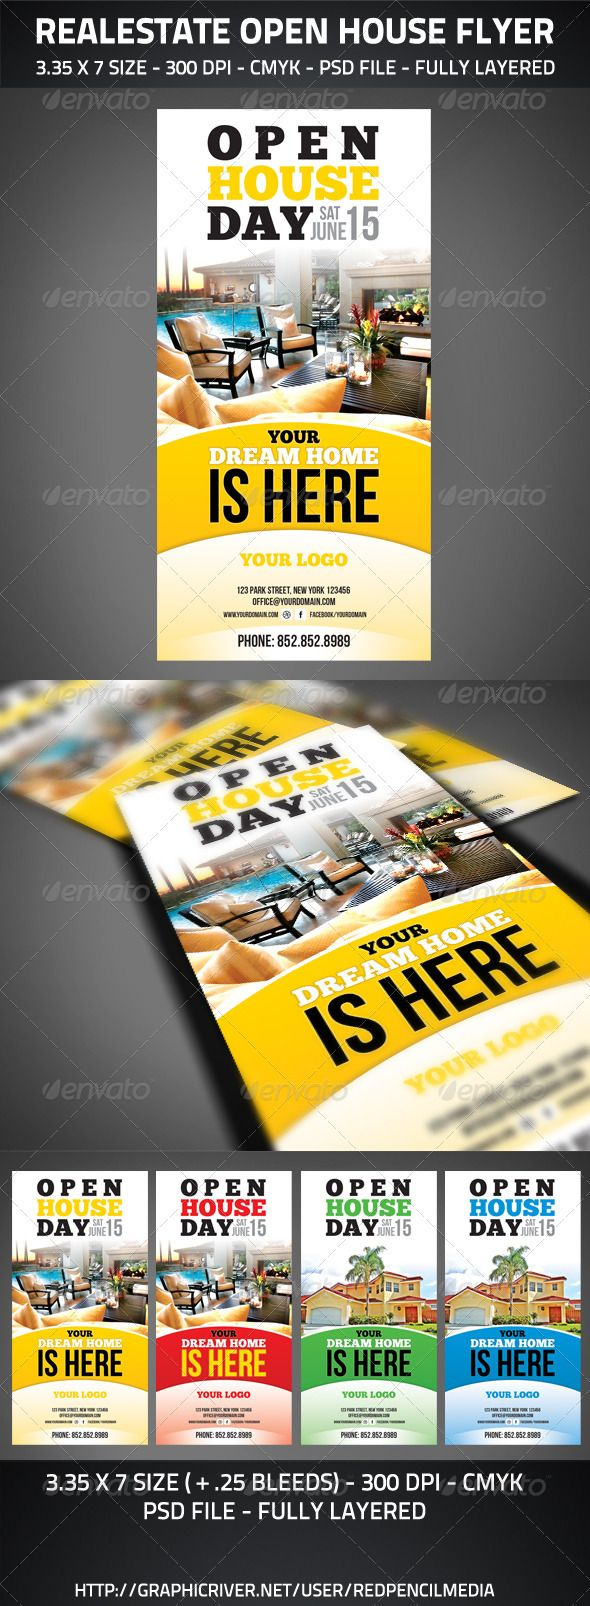 images about real estate ads corporate realestate open house flyer